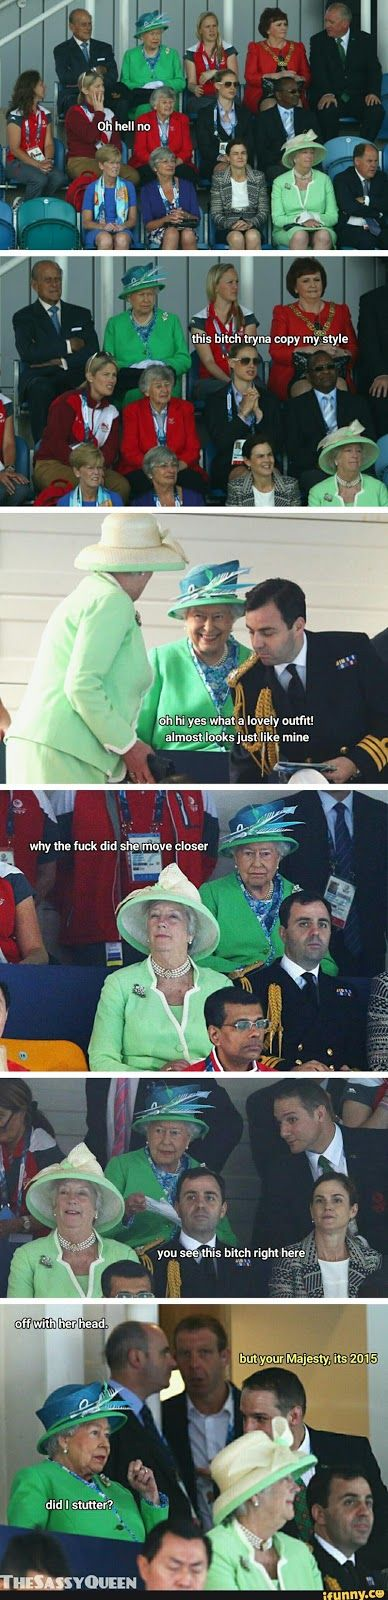 Funny Queen Elizabeth Off With Her Head!